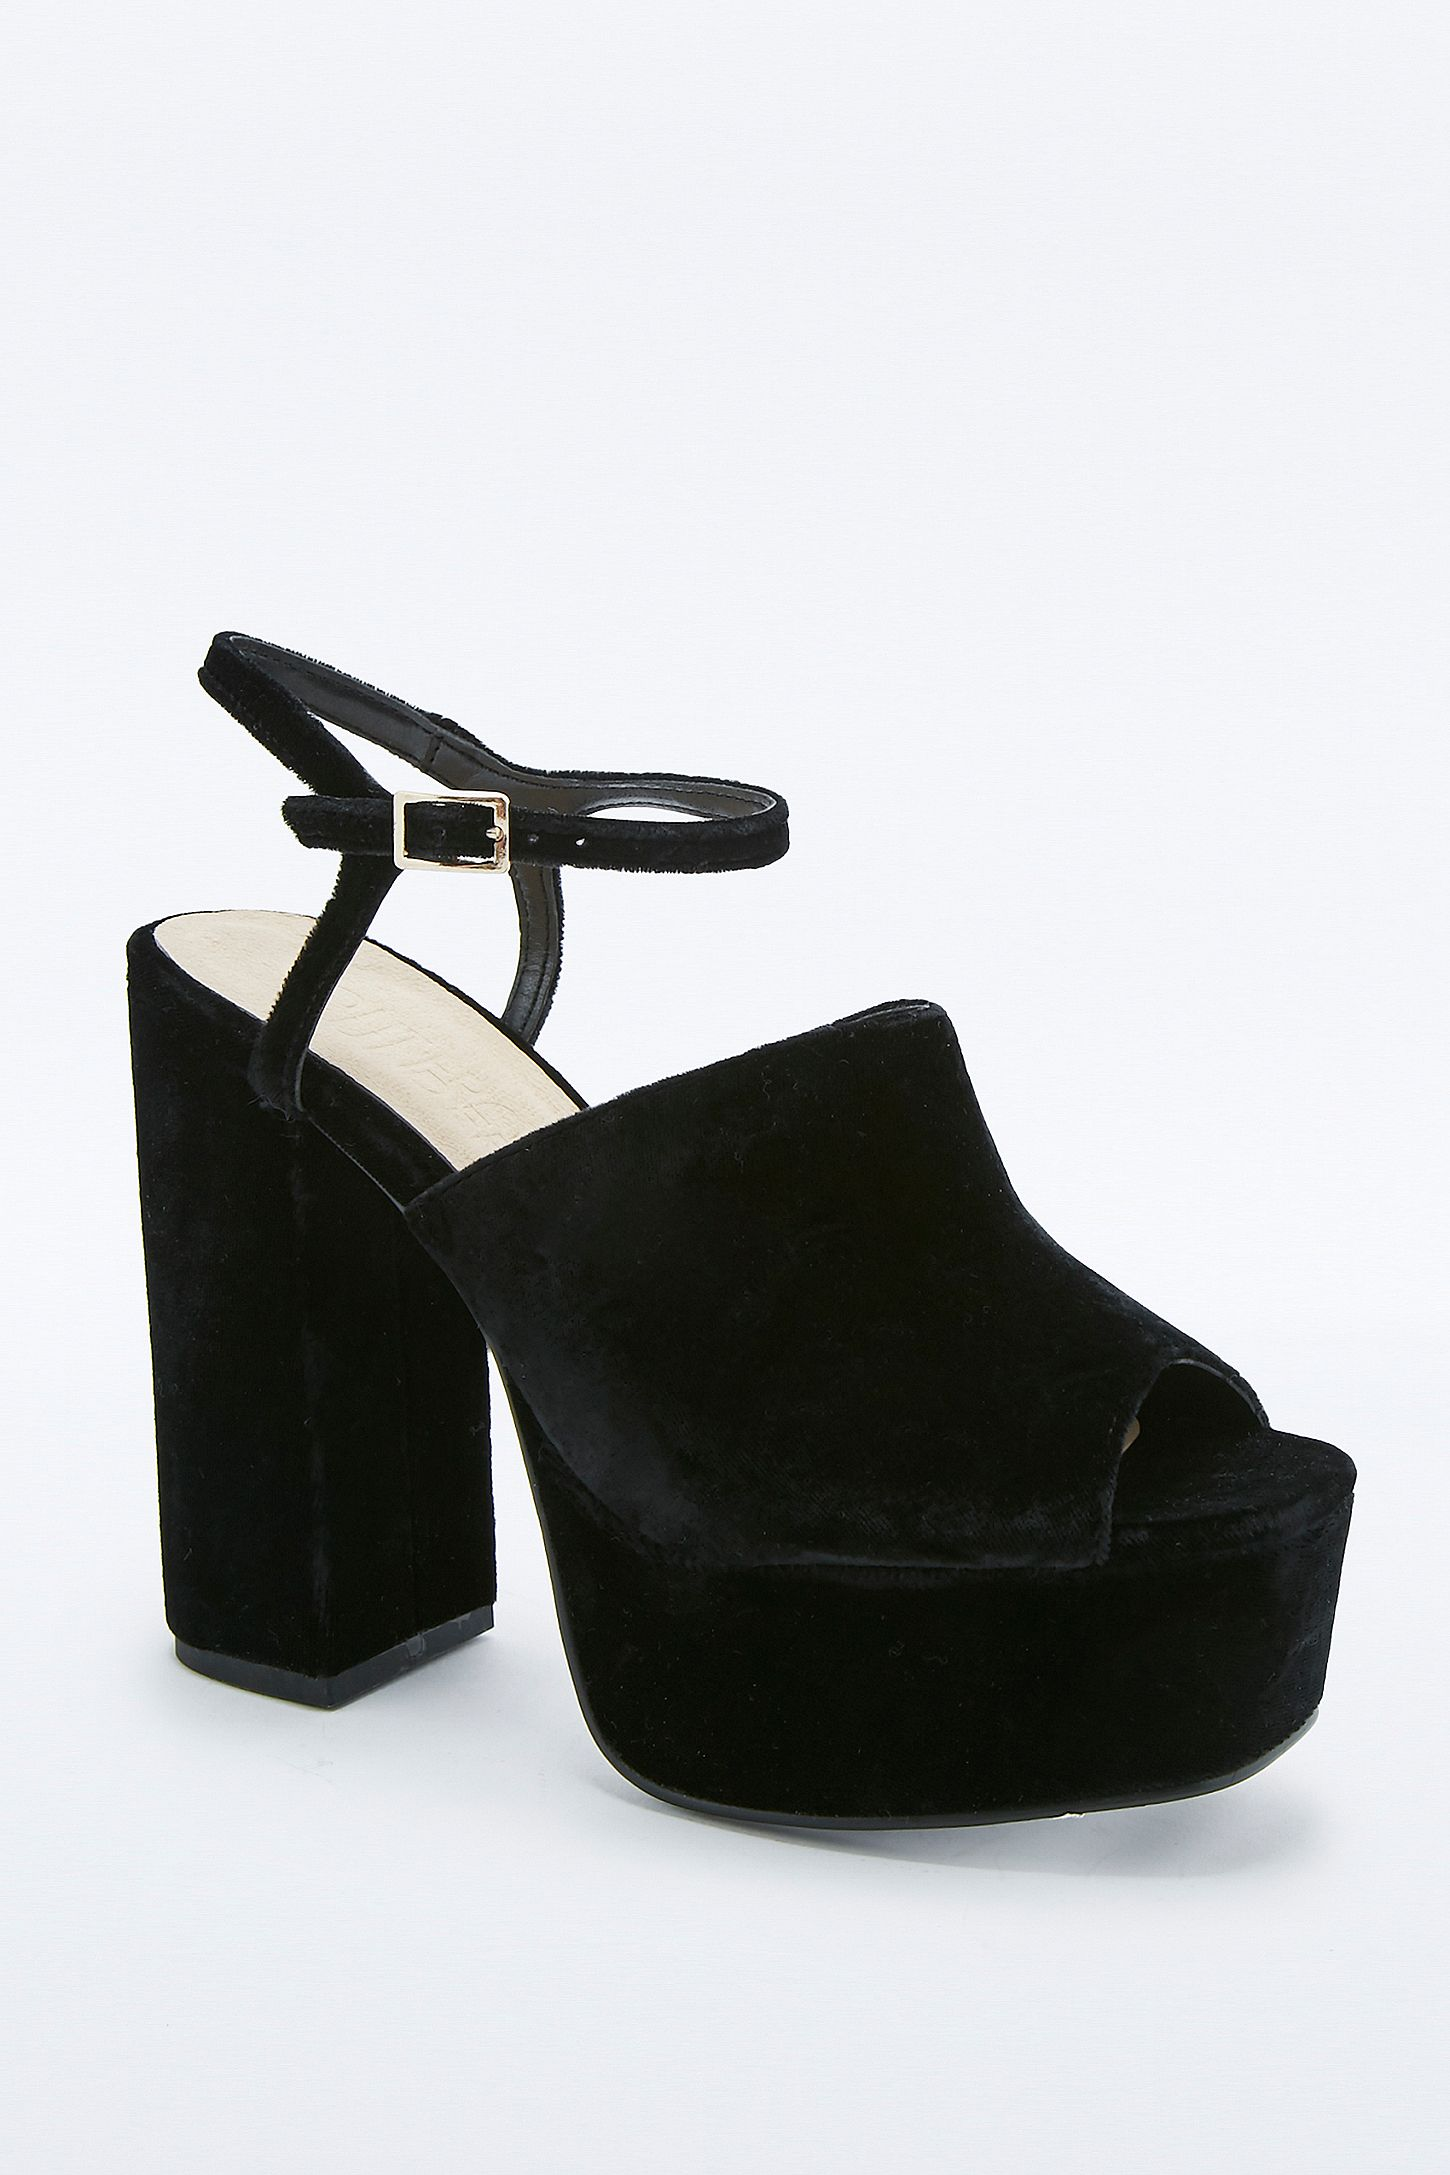 1e08d6747ad Phoebe Black Velvet Platform Shoes. Click on image to zoom. Hover to zoom.  Double Tap to Zoom